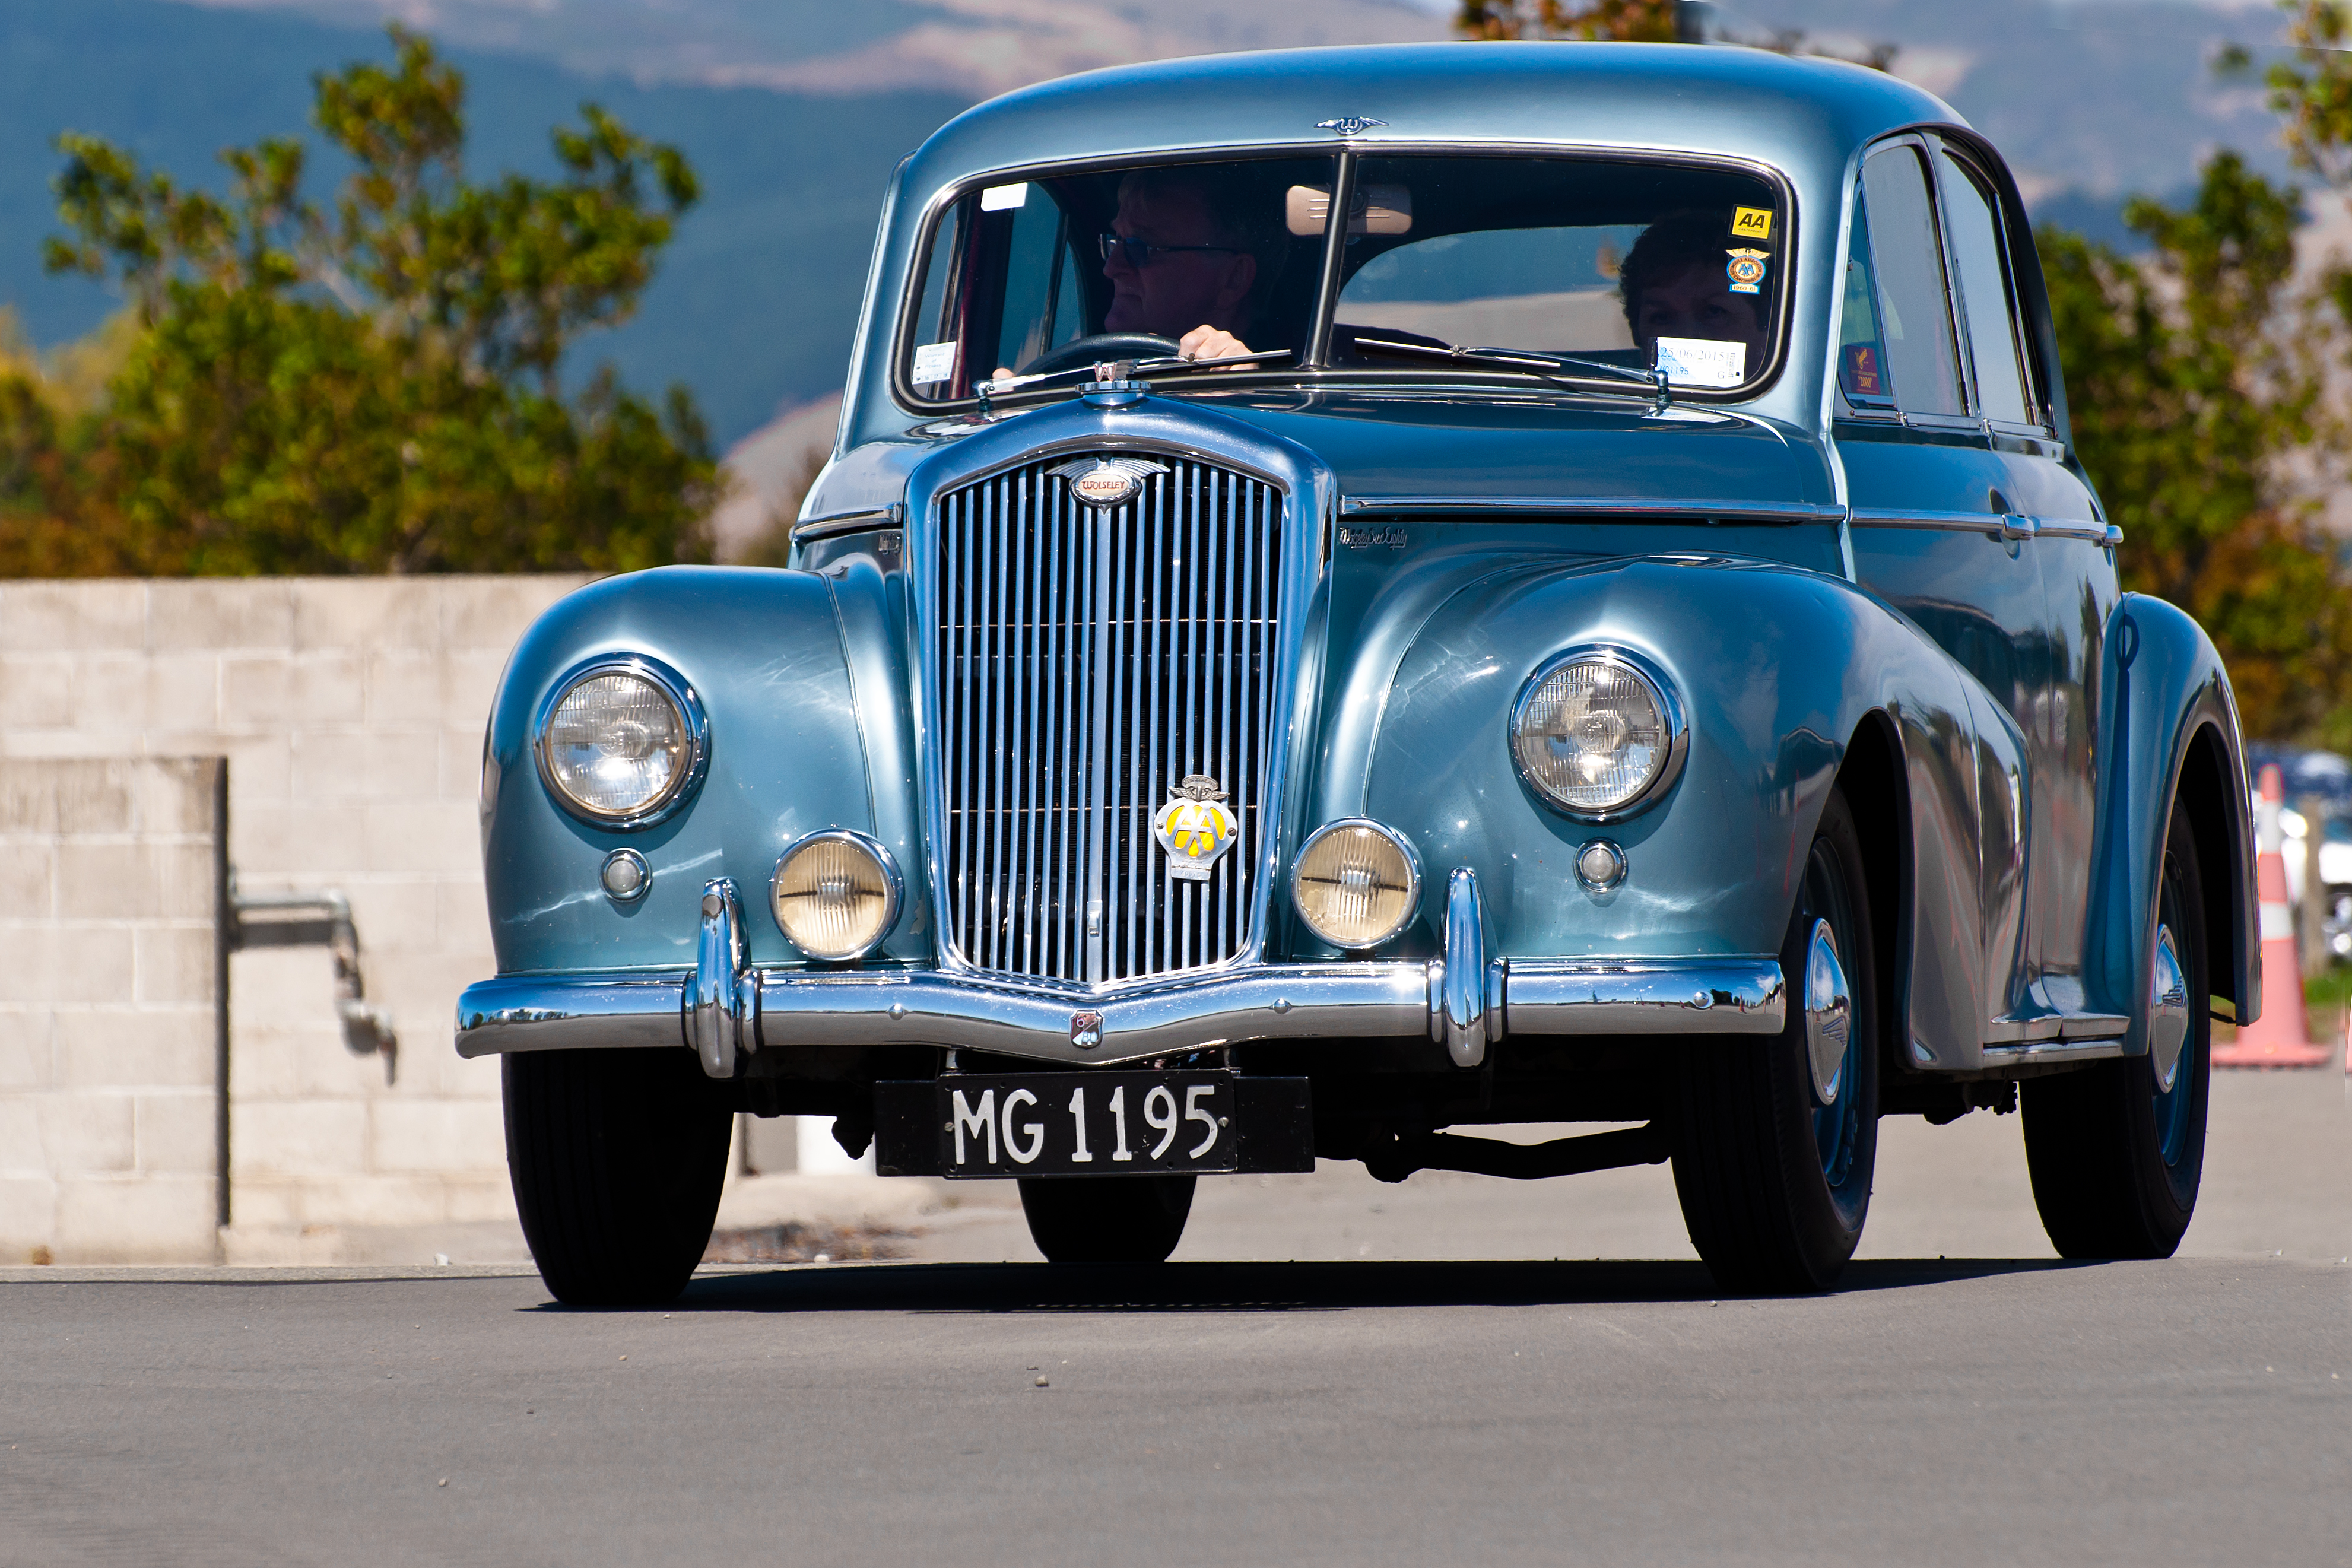 1952 WOLSELEY 680, 1952, Car, Wolseley, HQ Photo